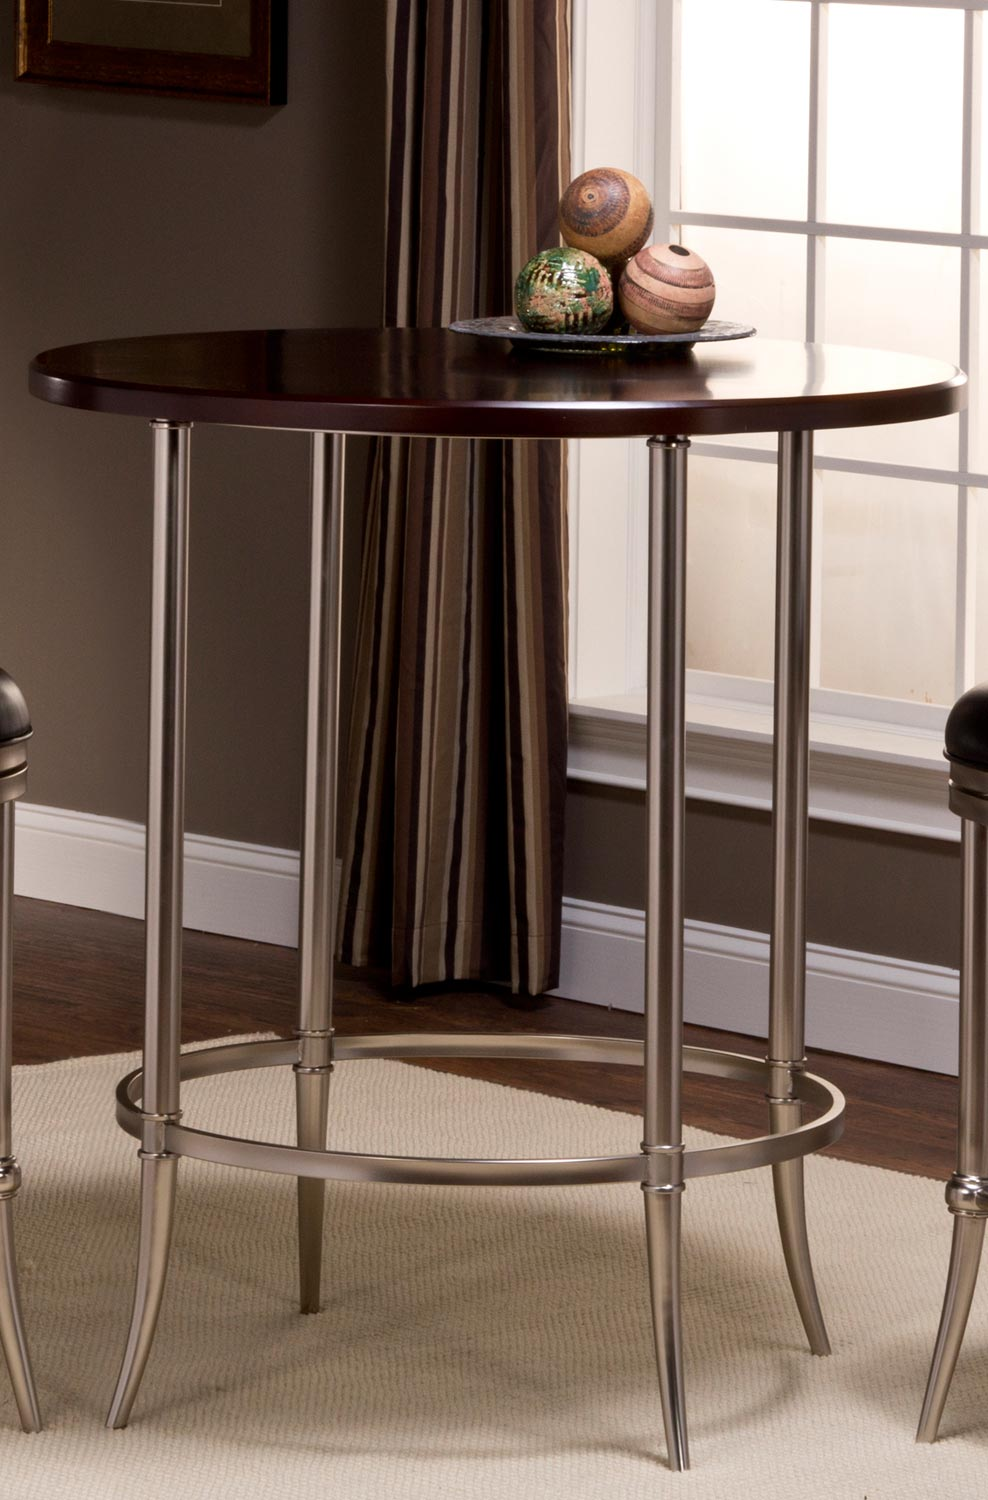 Hillsdale Maddox Bar Height Bistro Table - Espresso/Dull Nickel